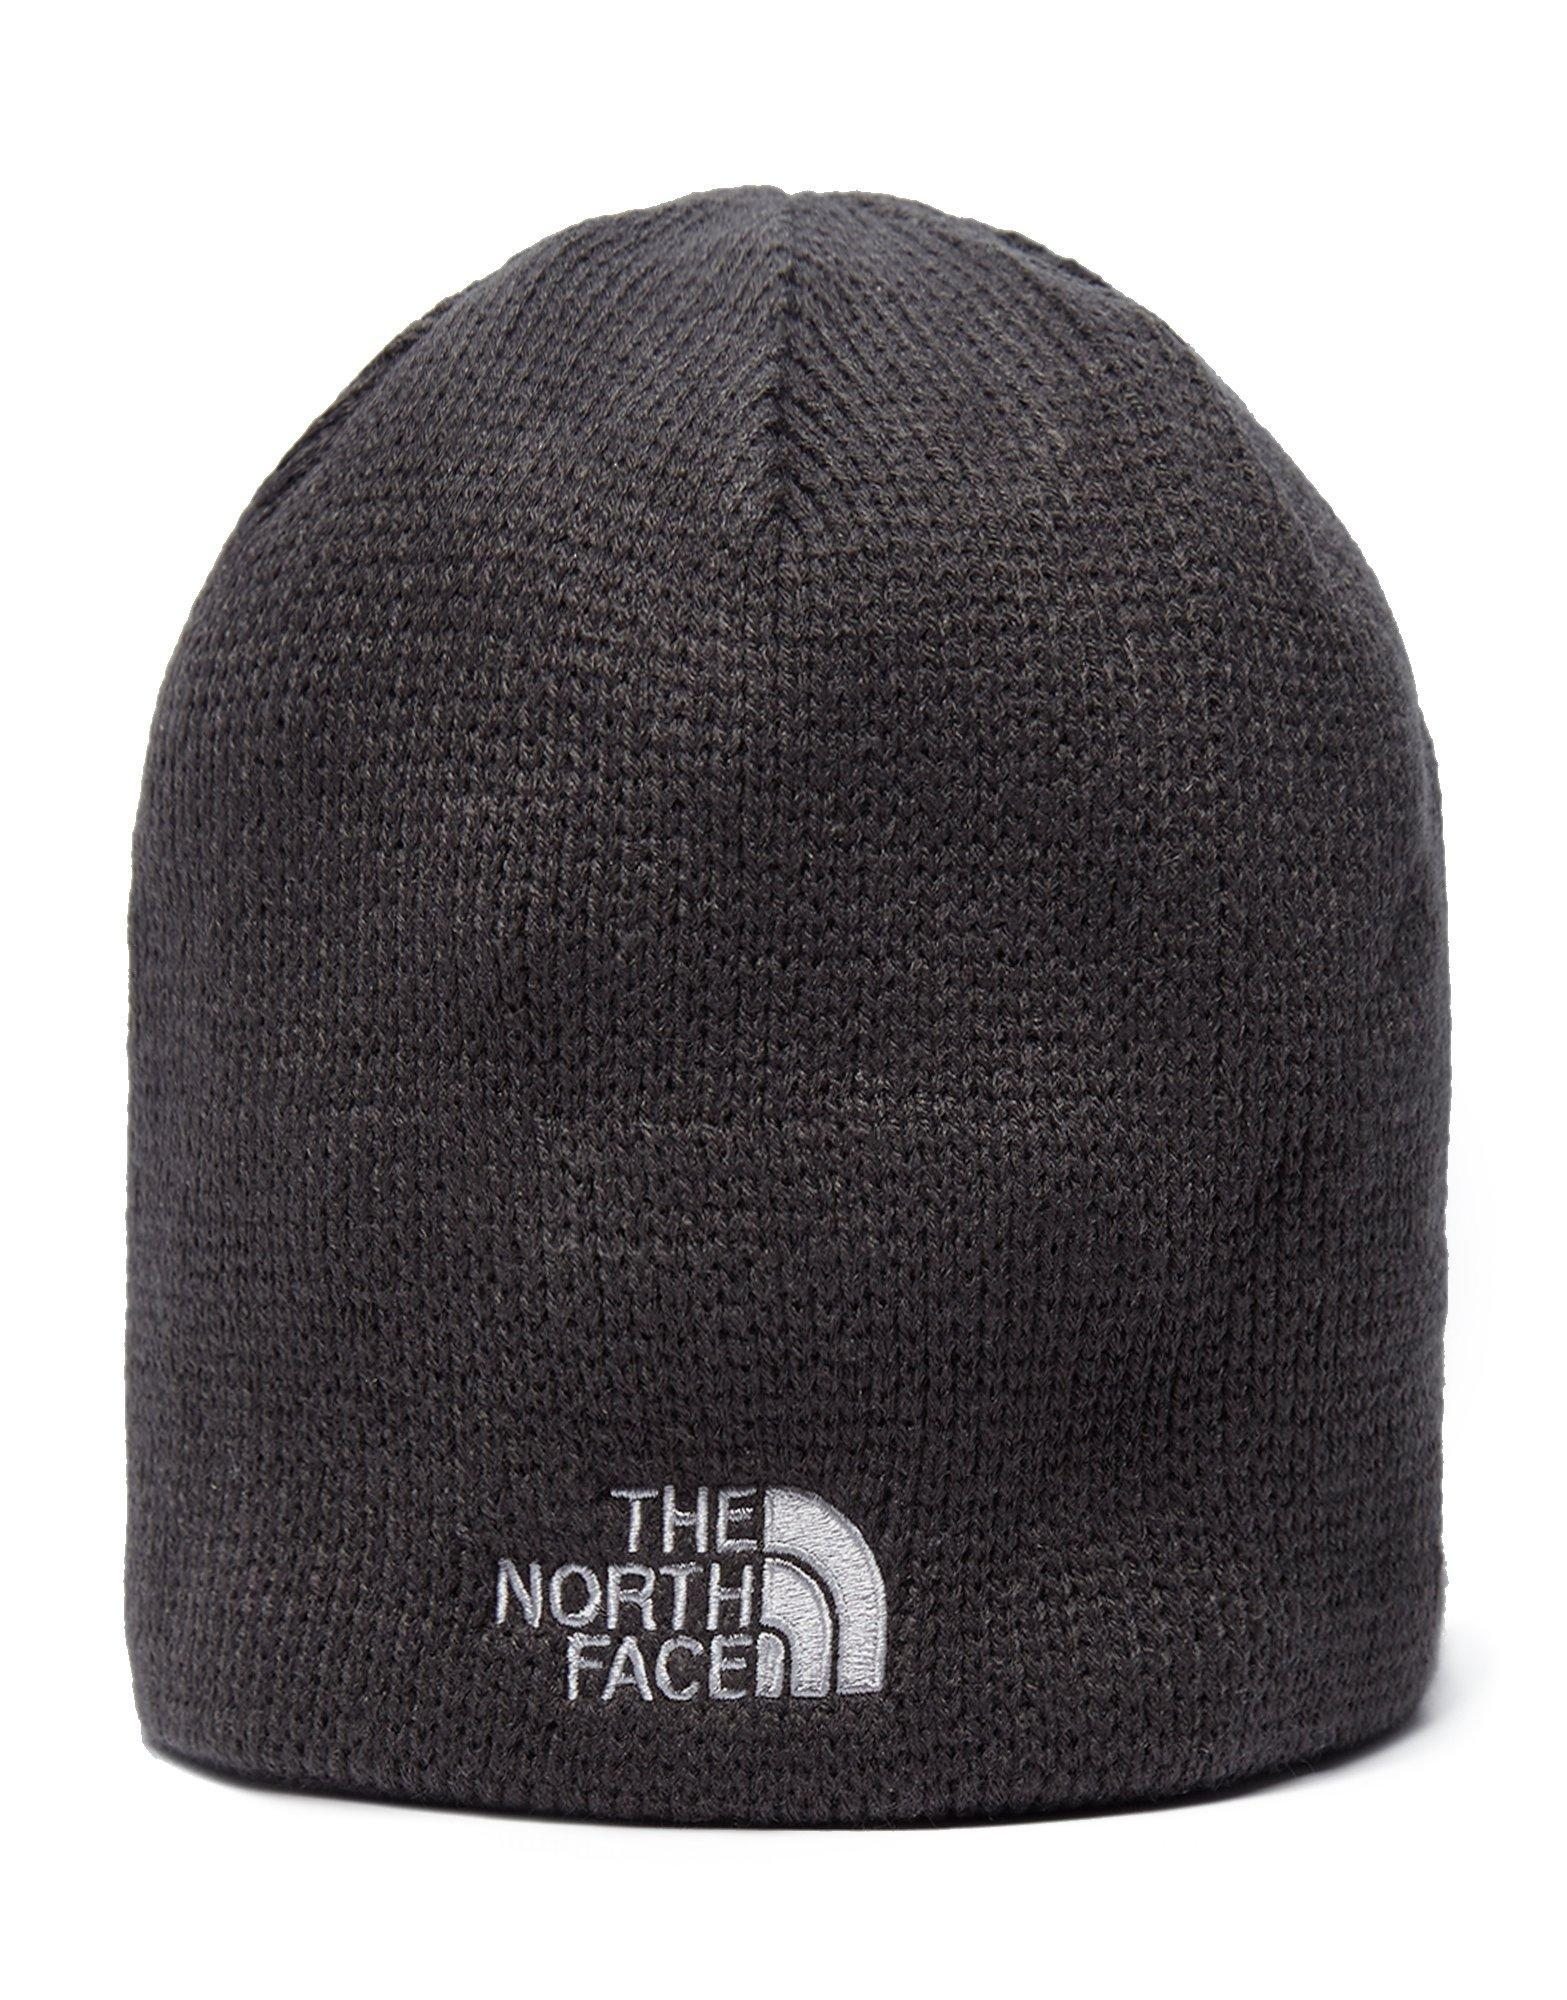 Lyst The North Face Bones Beanie Hat In Gray d2c26d7838e4